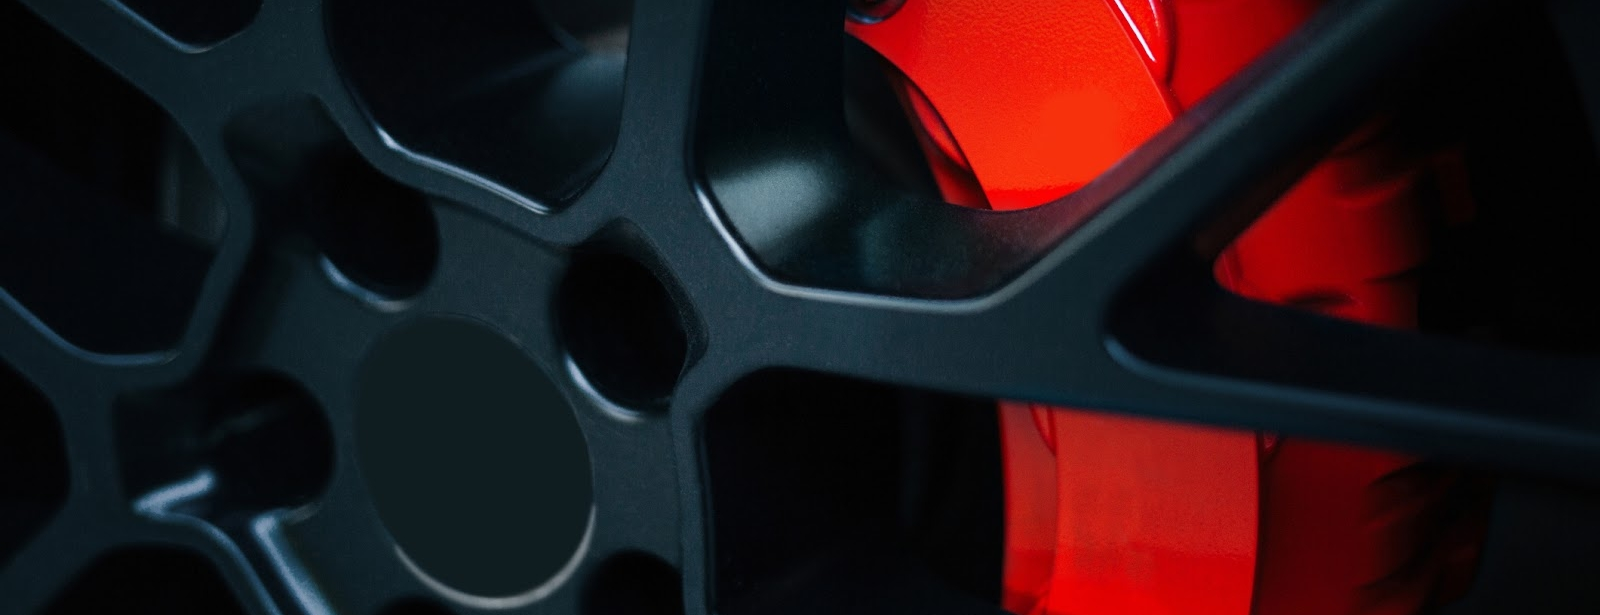 Close up of black wheel rim with red disk brakes